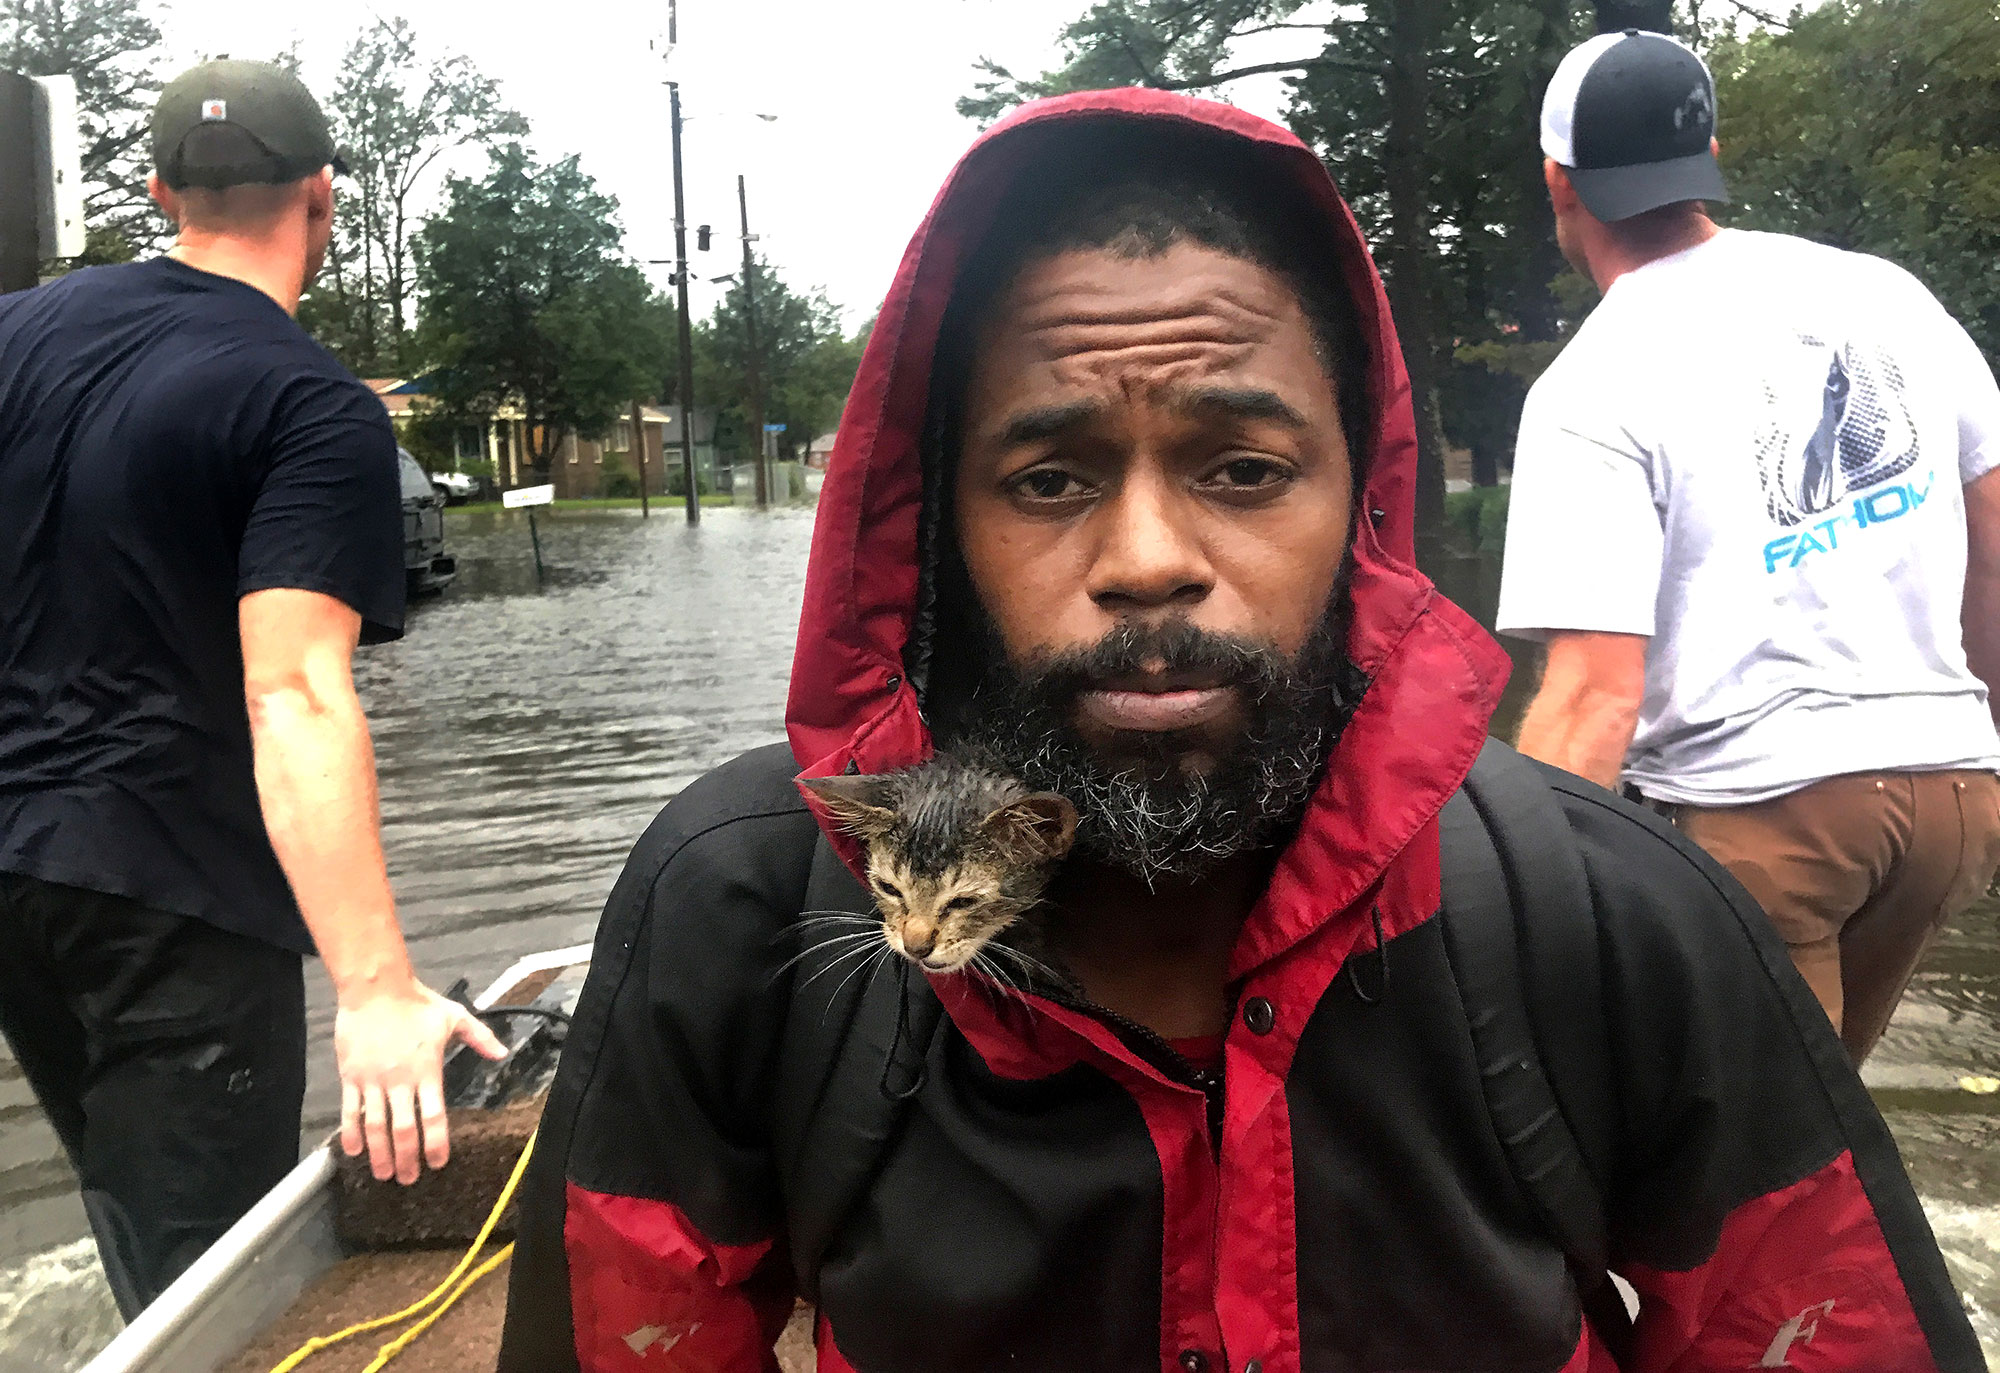 North Carolina Man & His Adorable Kitten Named 'Survivor' Rescued During Florence